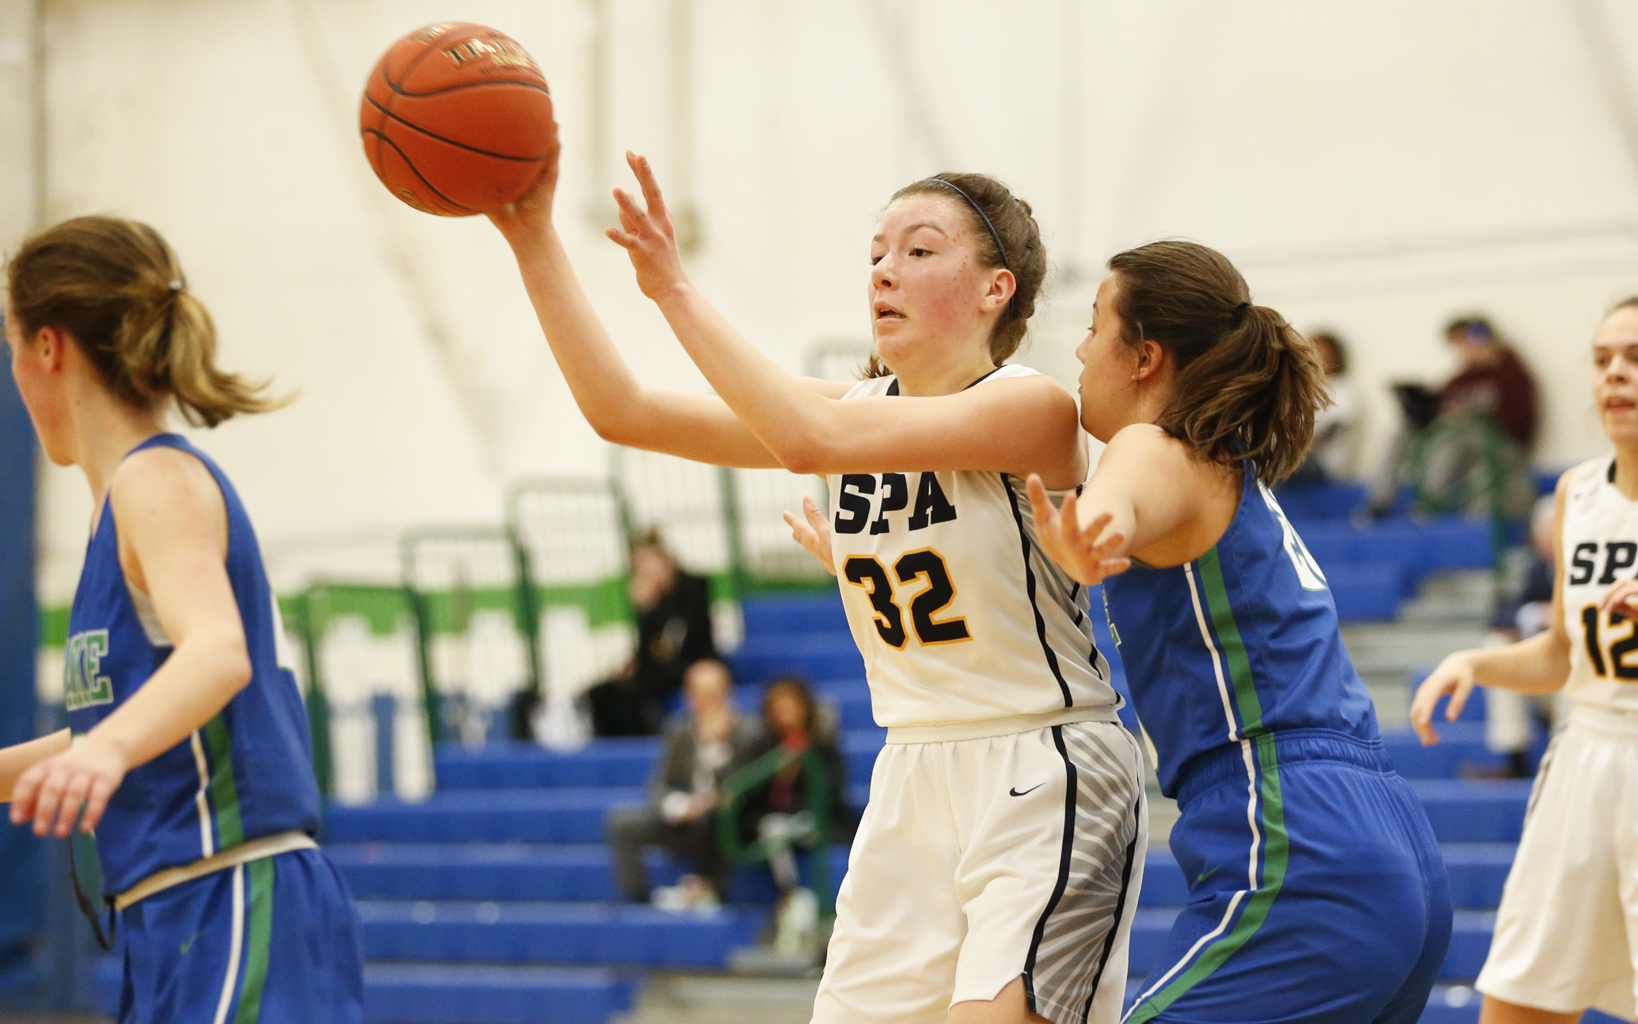 St. Paul Academy's Pilar Saavedra-Weis (32) passes the ball outside after pulling down a rebound against Blake Thursday night. Saavedra-Weis had 12 points and 14 rebounds in the Spartans 68-39 loss to the Bears. Photo by Jeff Lawler, SportsEngine